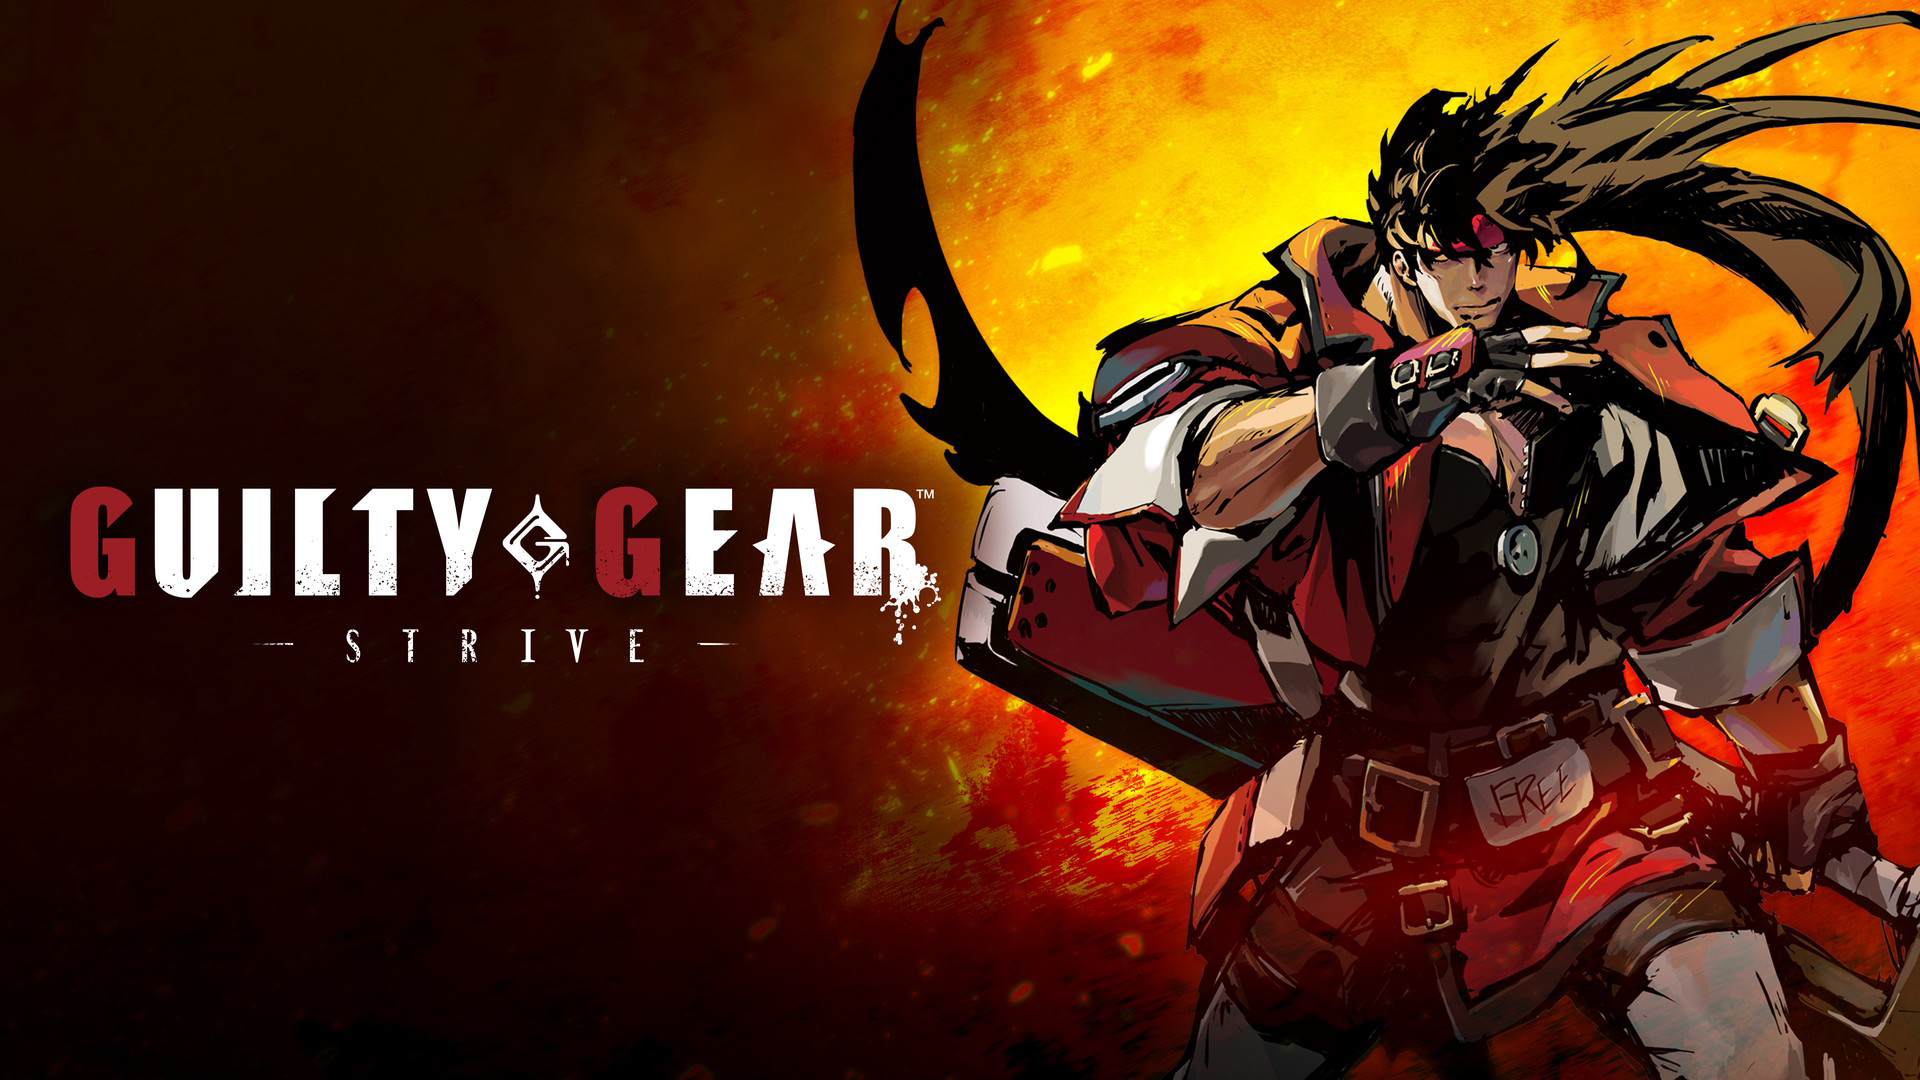 GUILTY GEAR -STRIVE- 自己紹介カードメーカー | ARC SYSTEM WORKS